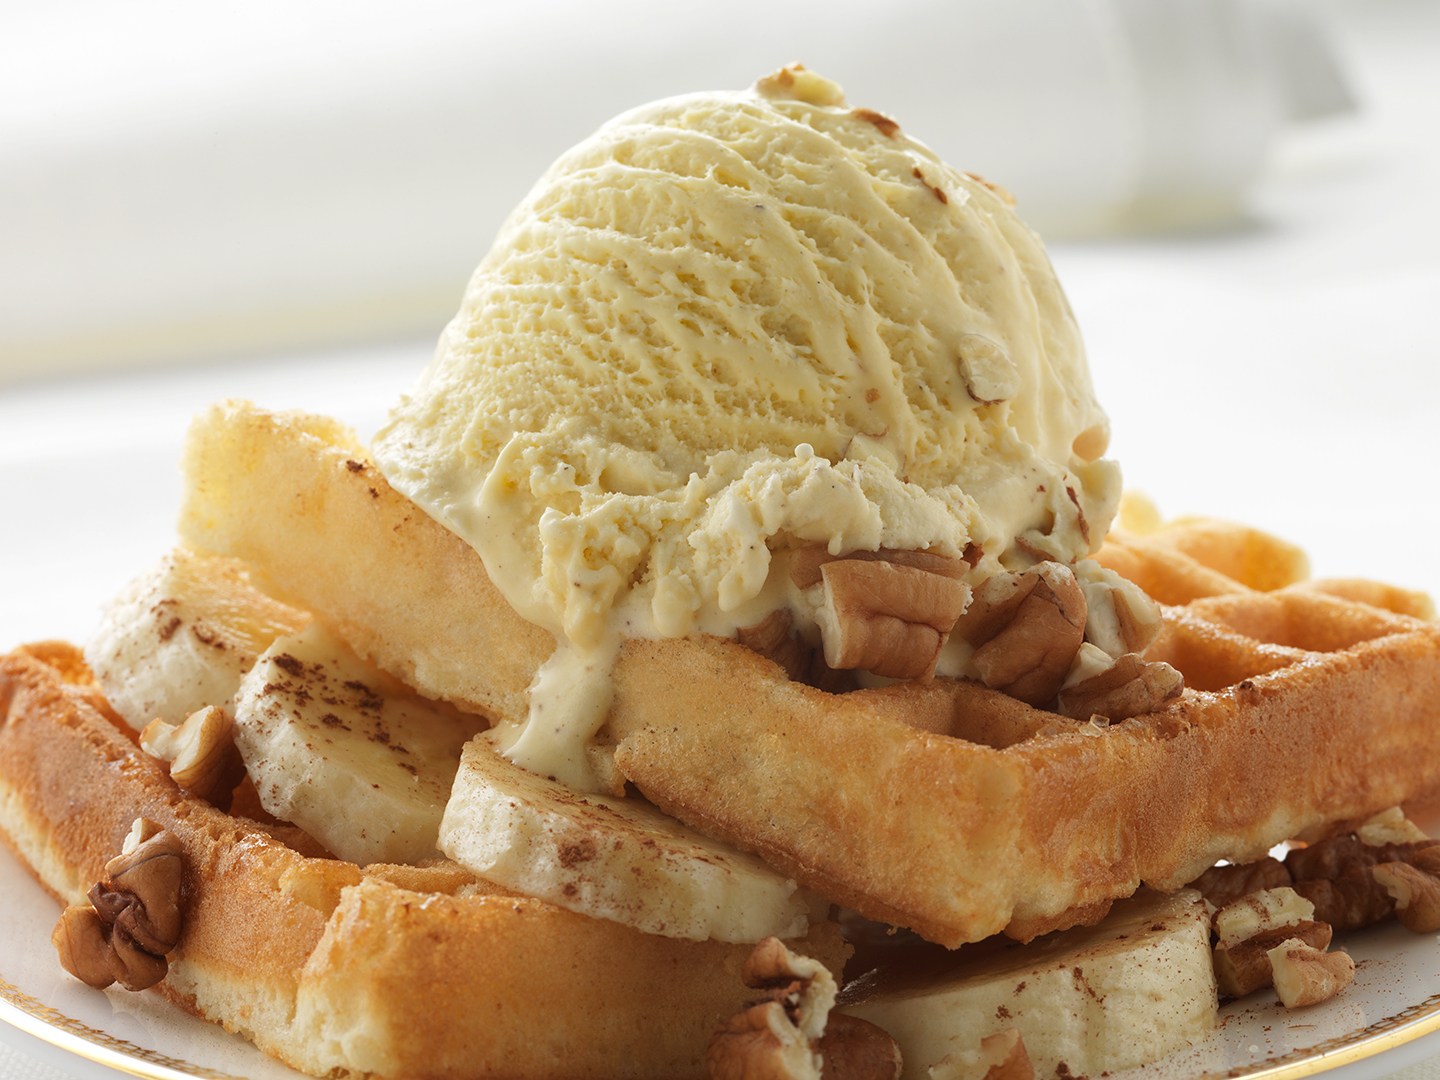 Banana and Cinnamon Waffles with Honeycomb Ice Cream